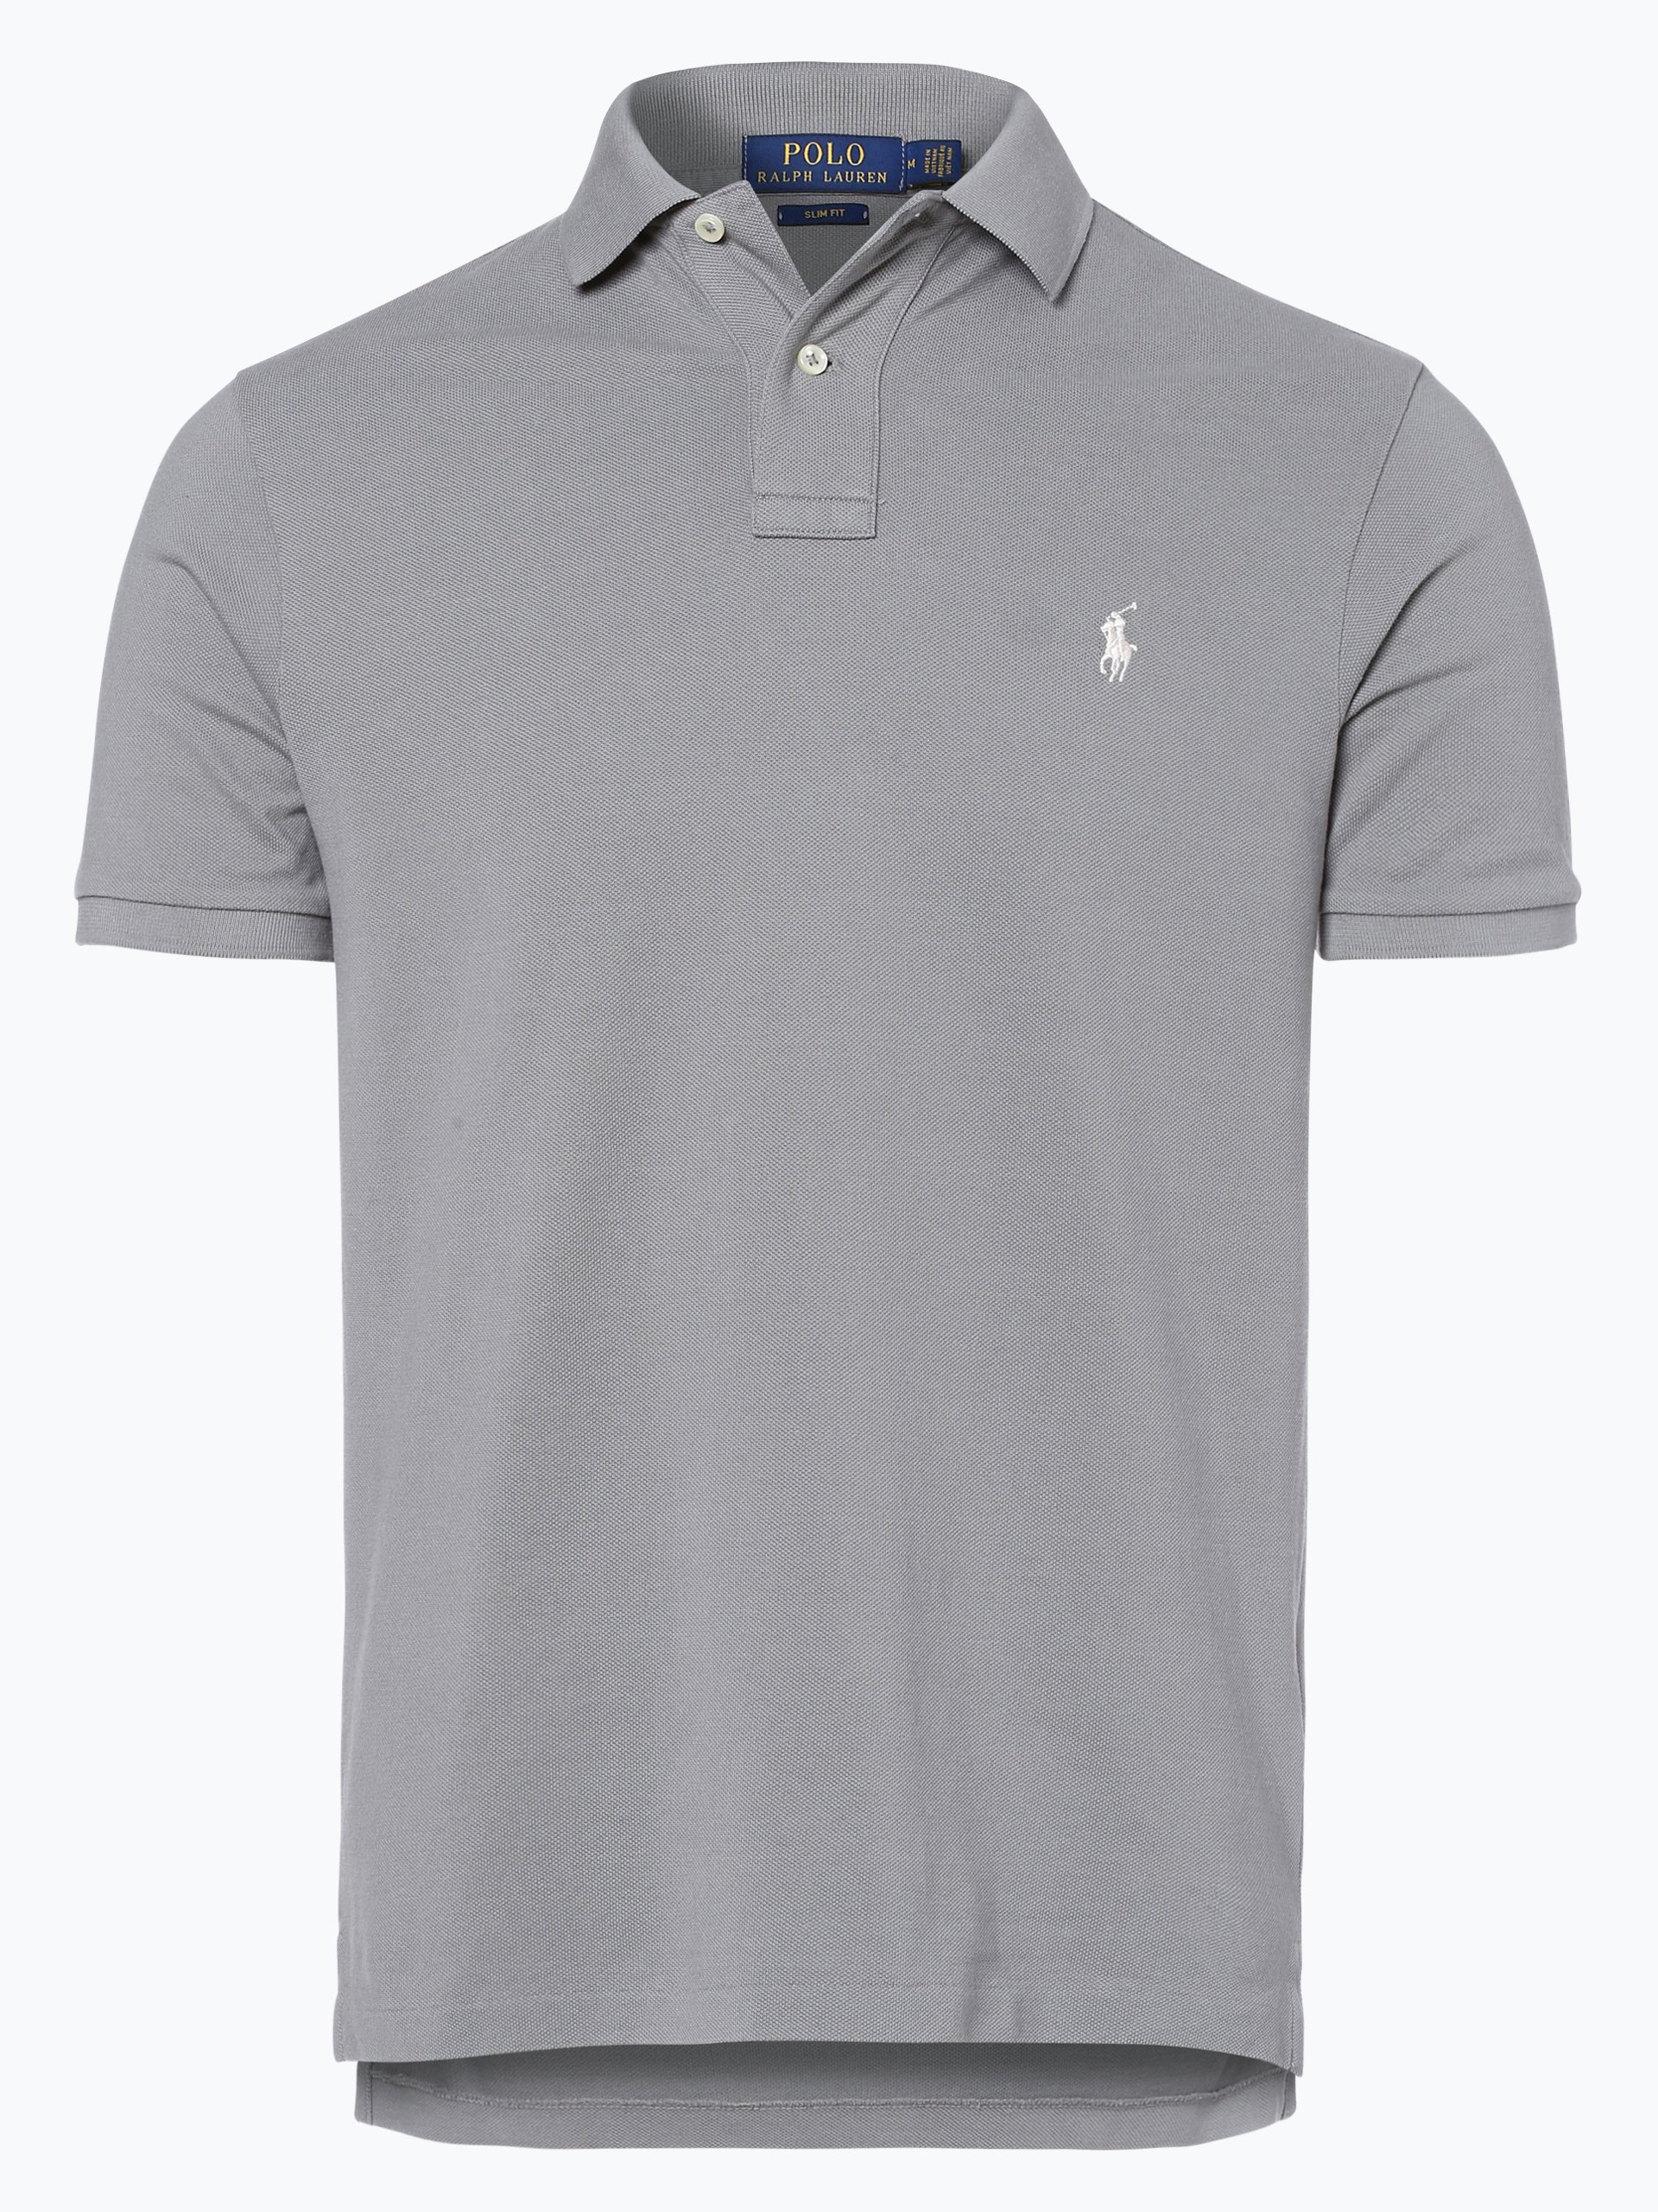 Polo Ralph Lauren Herren Poloshirt Slim Fit